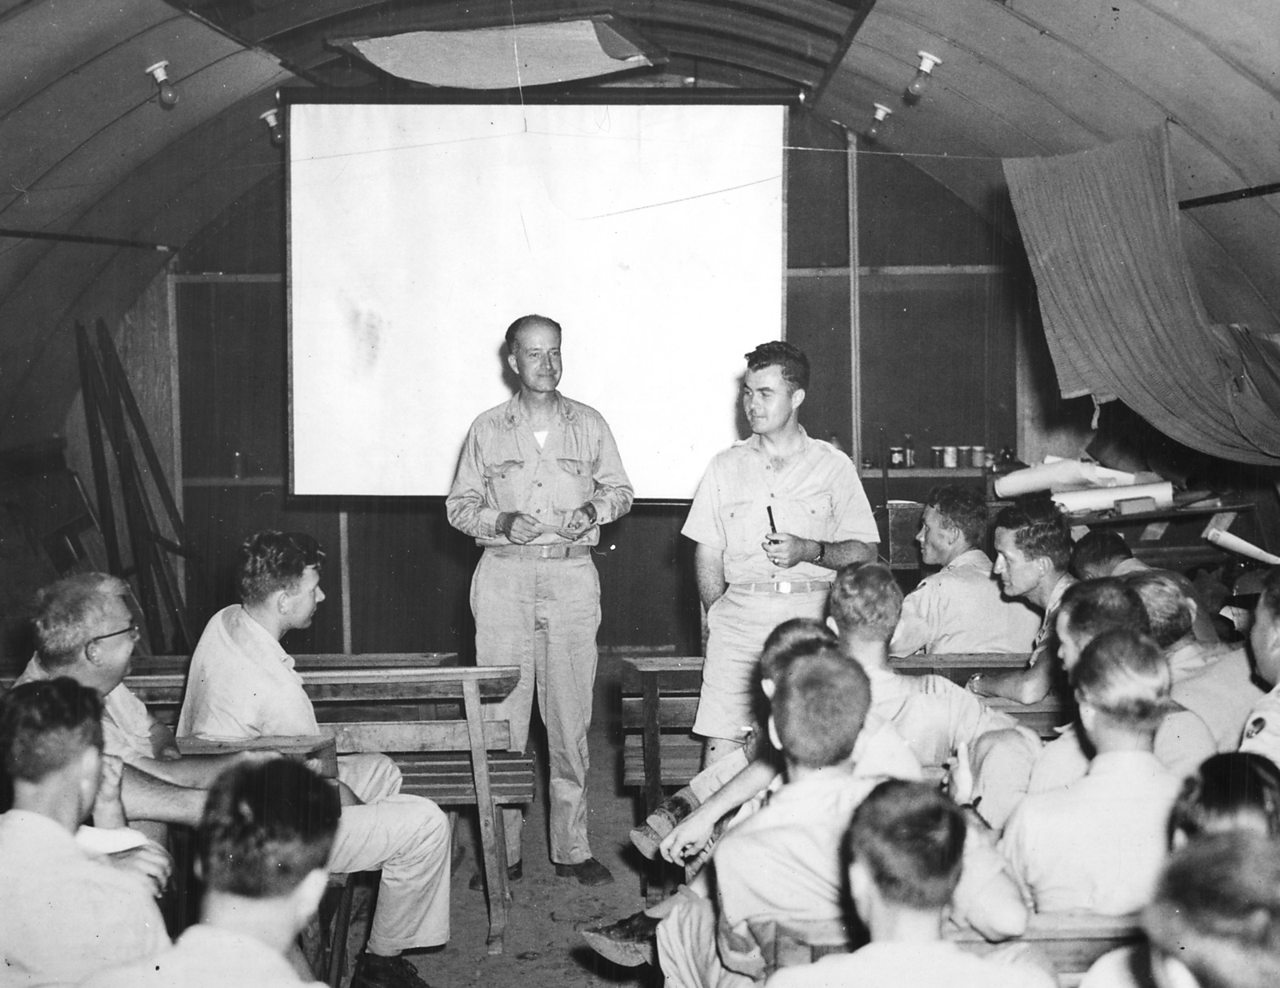 Captain Parsons and Paul Tibbets address their crews ahead of the mission.